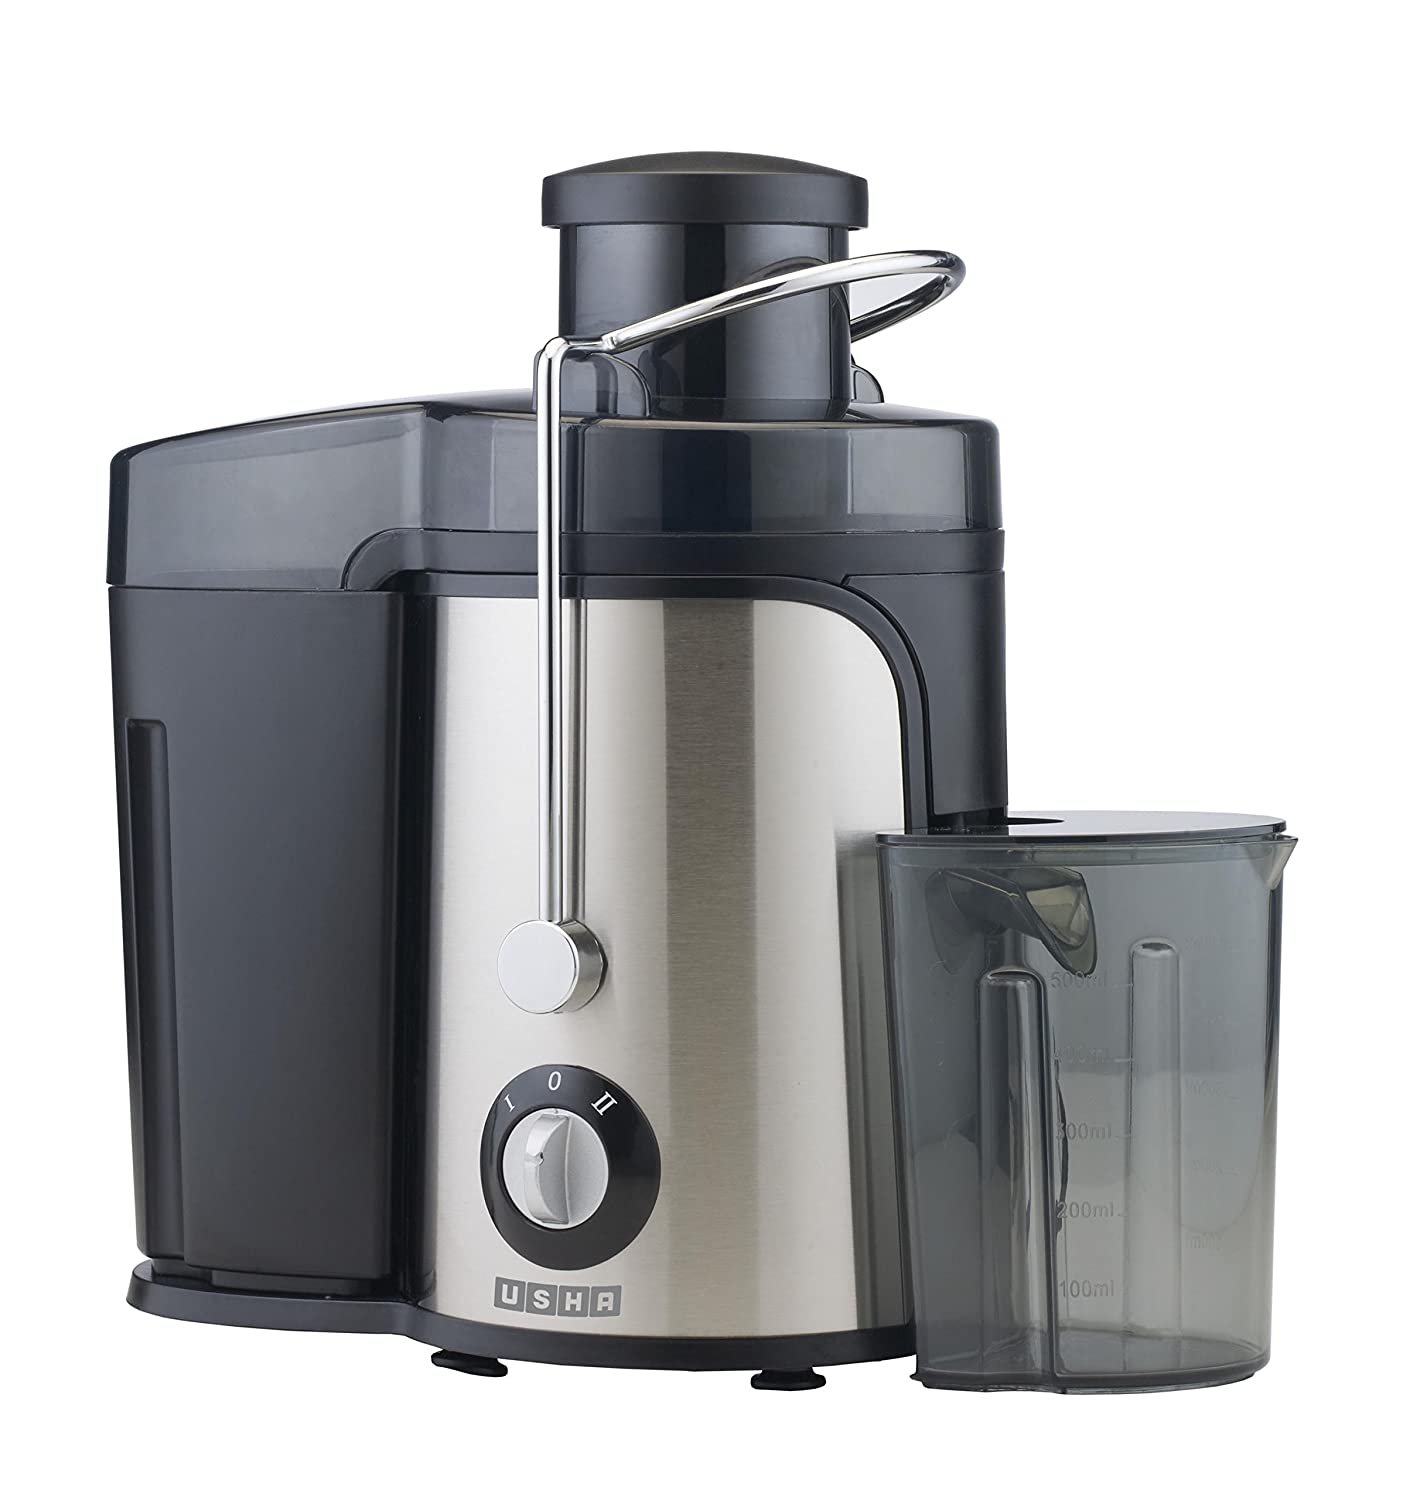 Usha 3240 400-Watt Stainless Steel Juicer